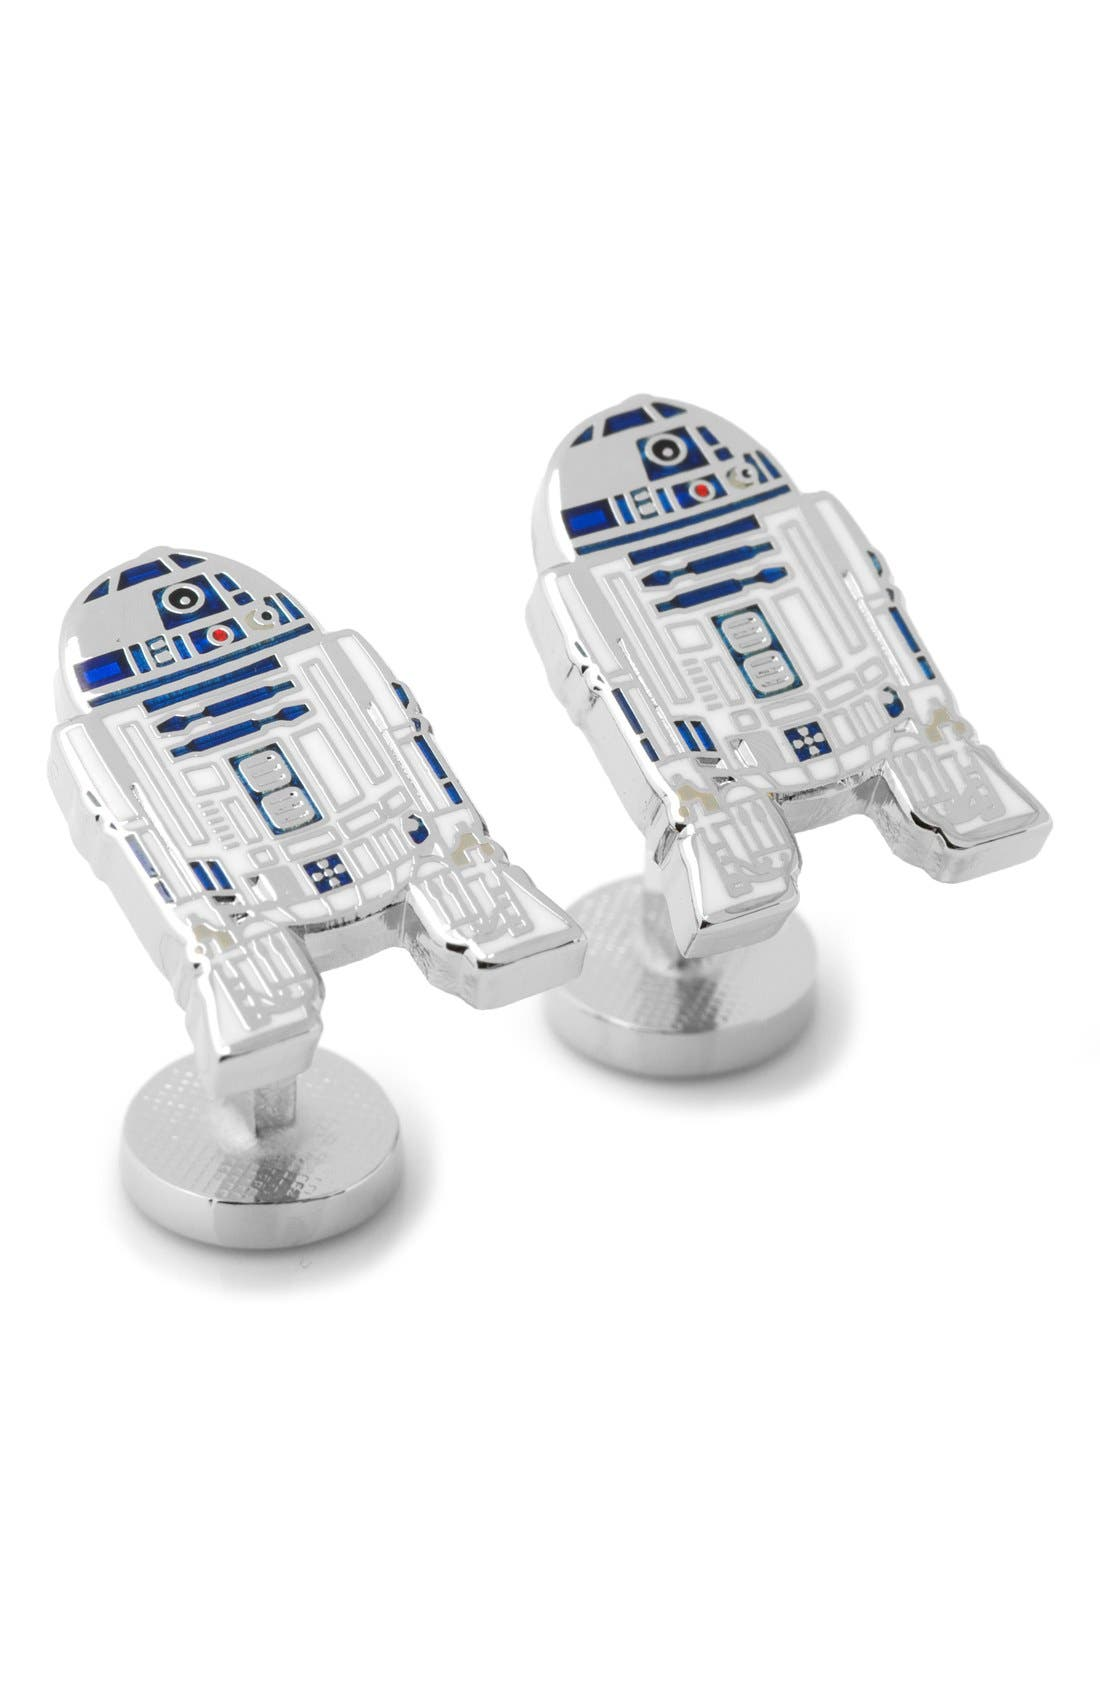 Star Wars R2D2 Cuff Links,                             Main thumbnail 1, color,                             GREY MULTI